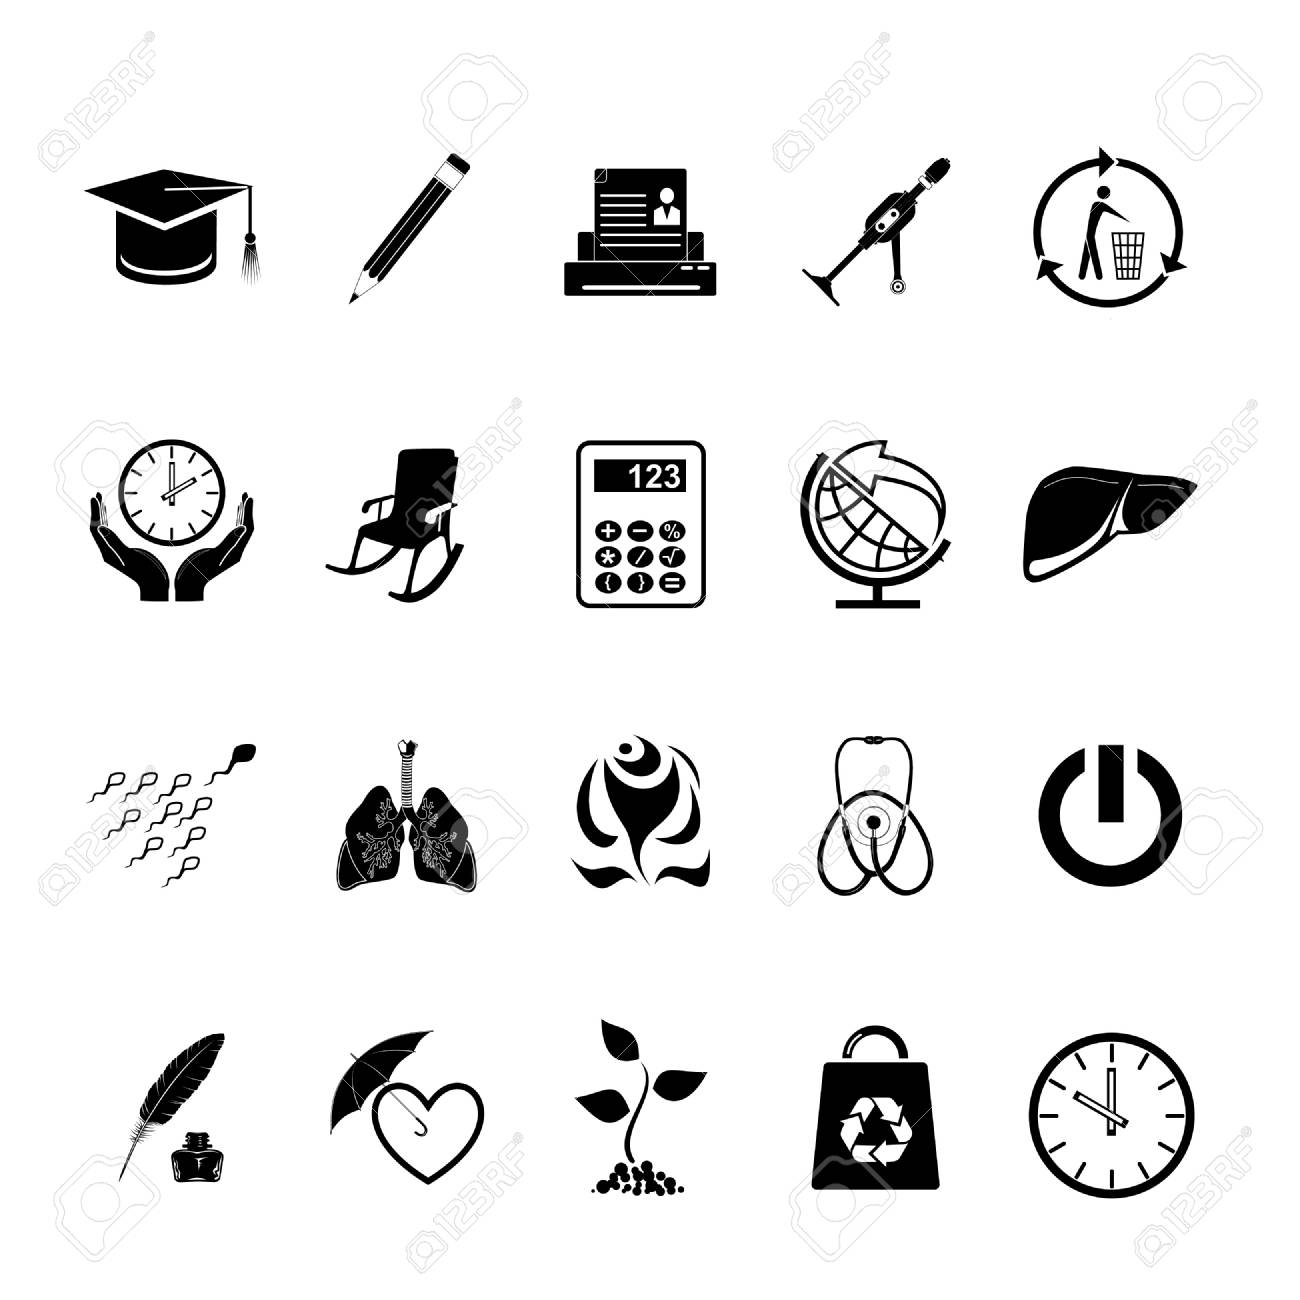 Vector set of icons Stock Photo - 8456693